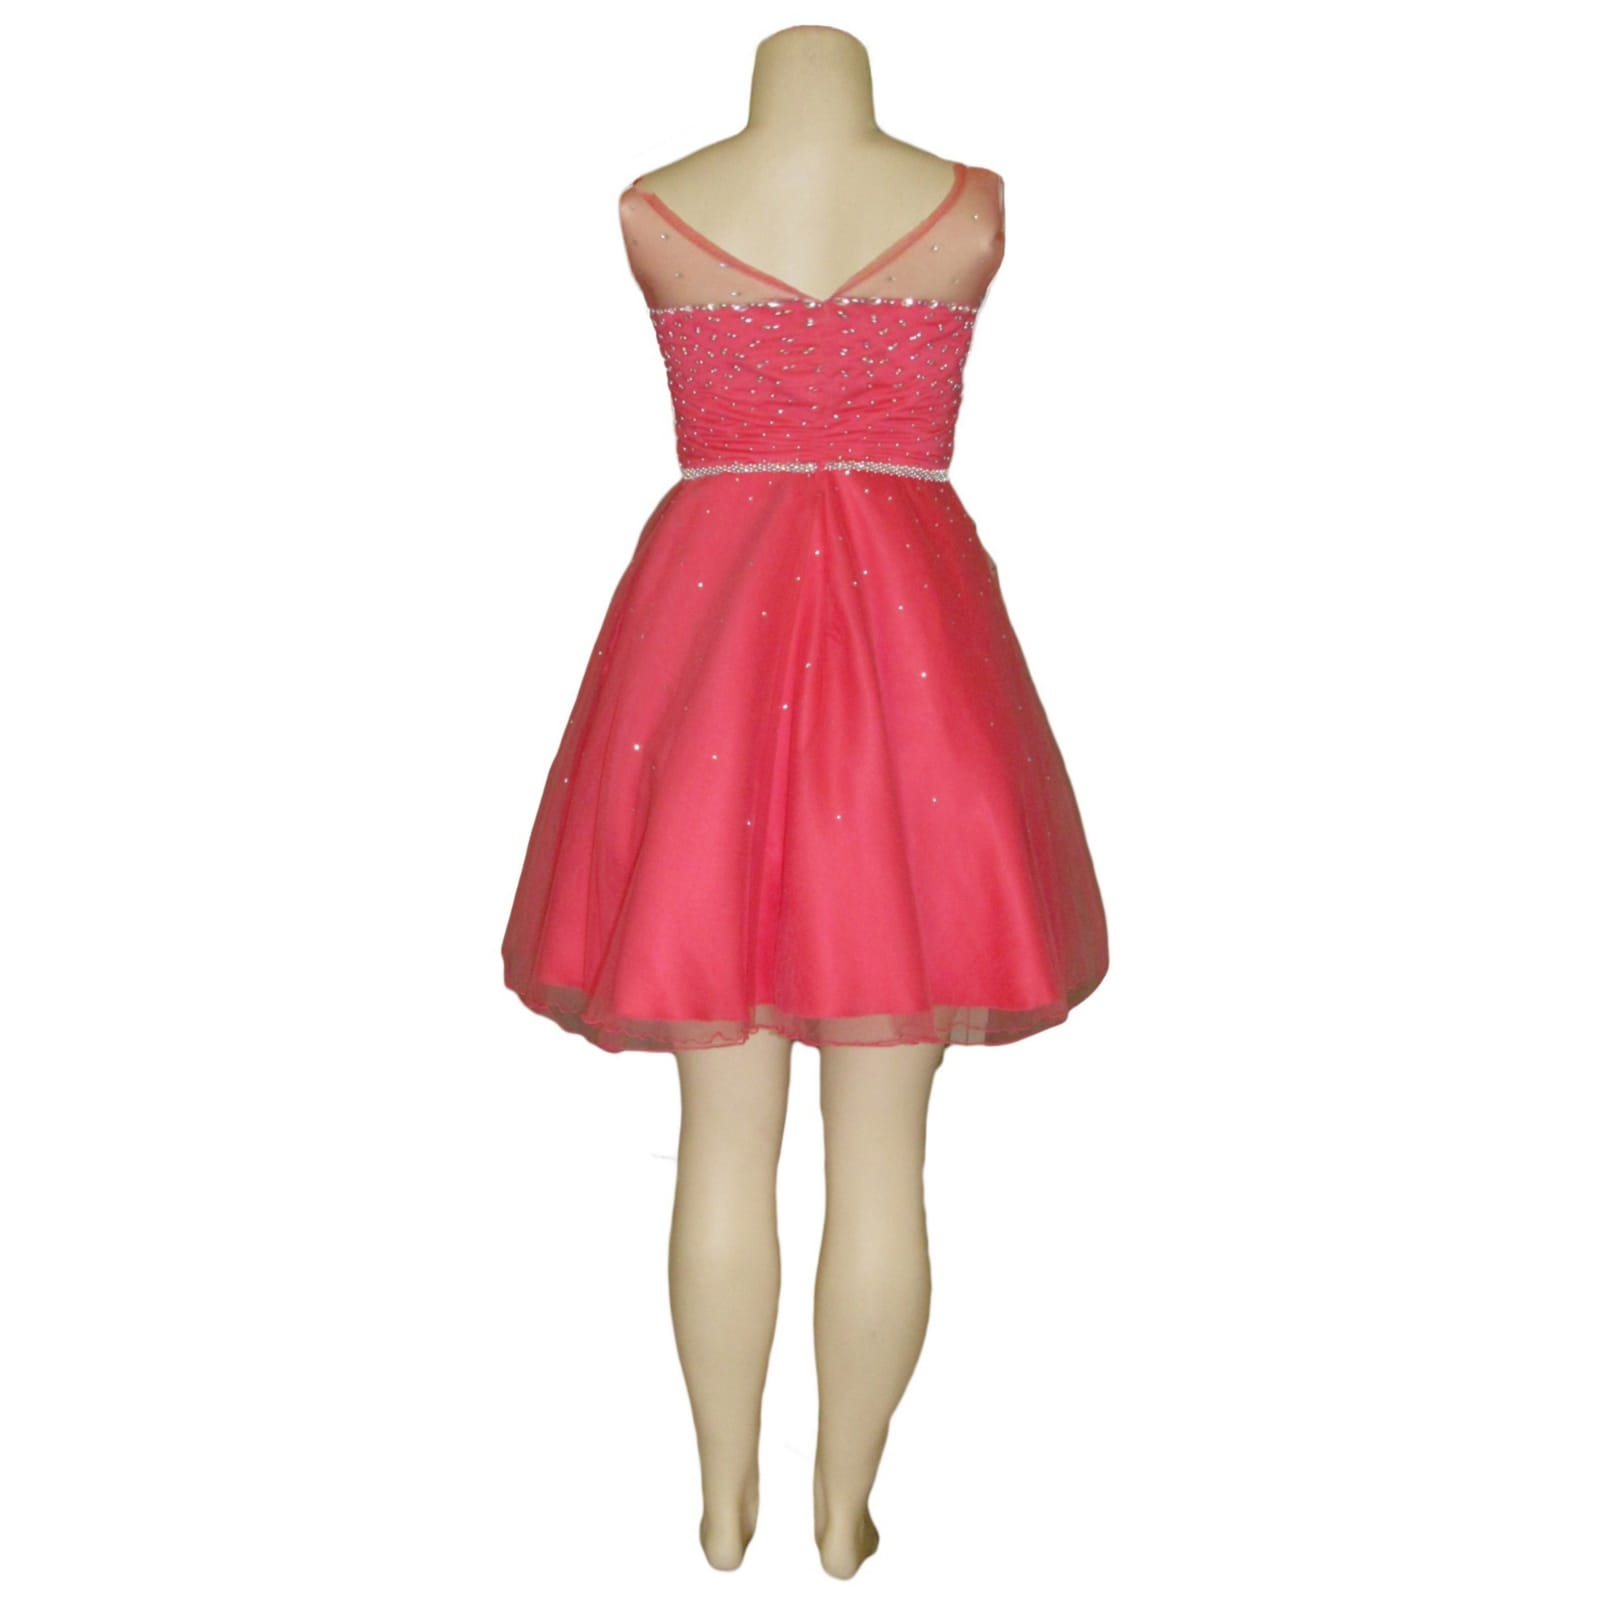 Bright coral and silver short evening gala dress 5 bright coral and silver short evening gala dress. Bodice and belt in silver beads with a few scattered beads at the bottom of the dress